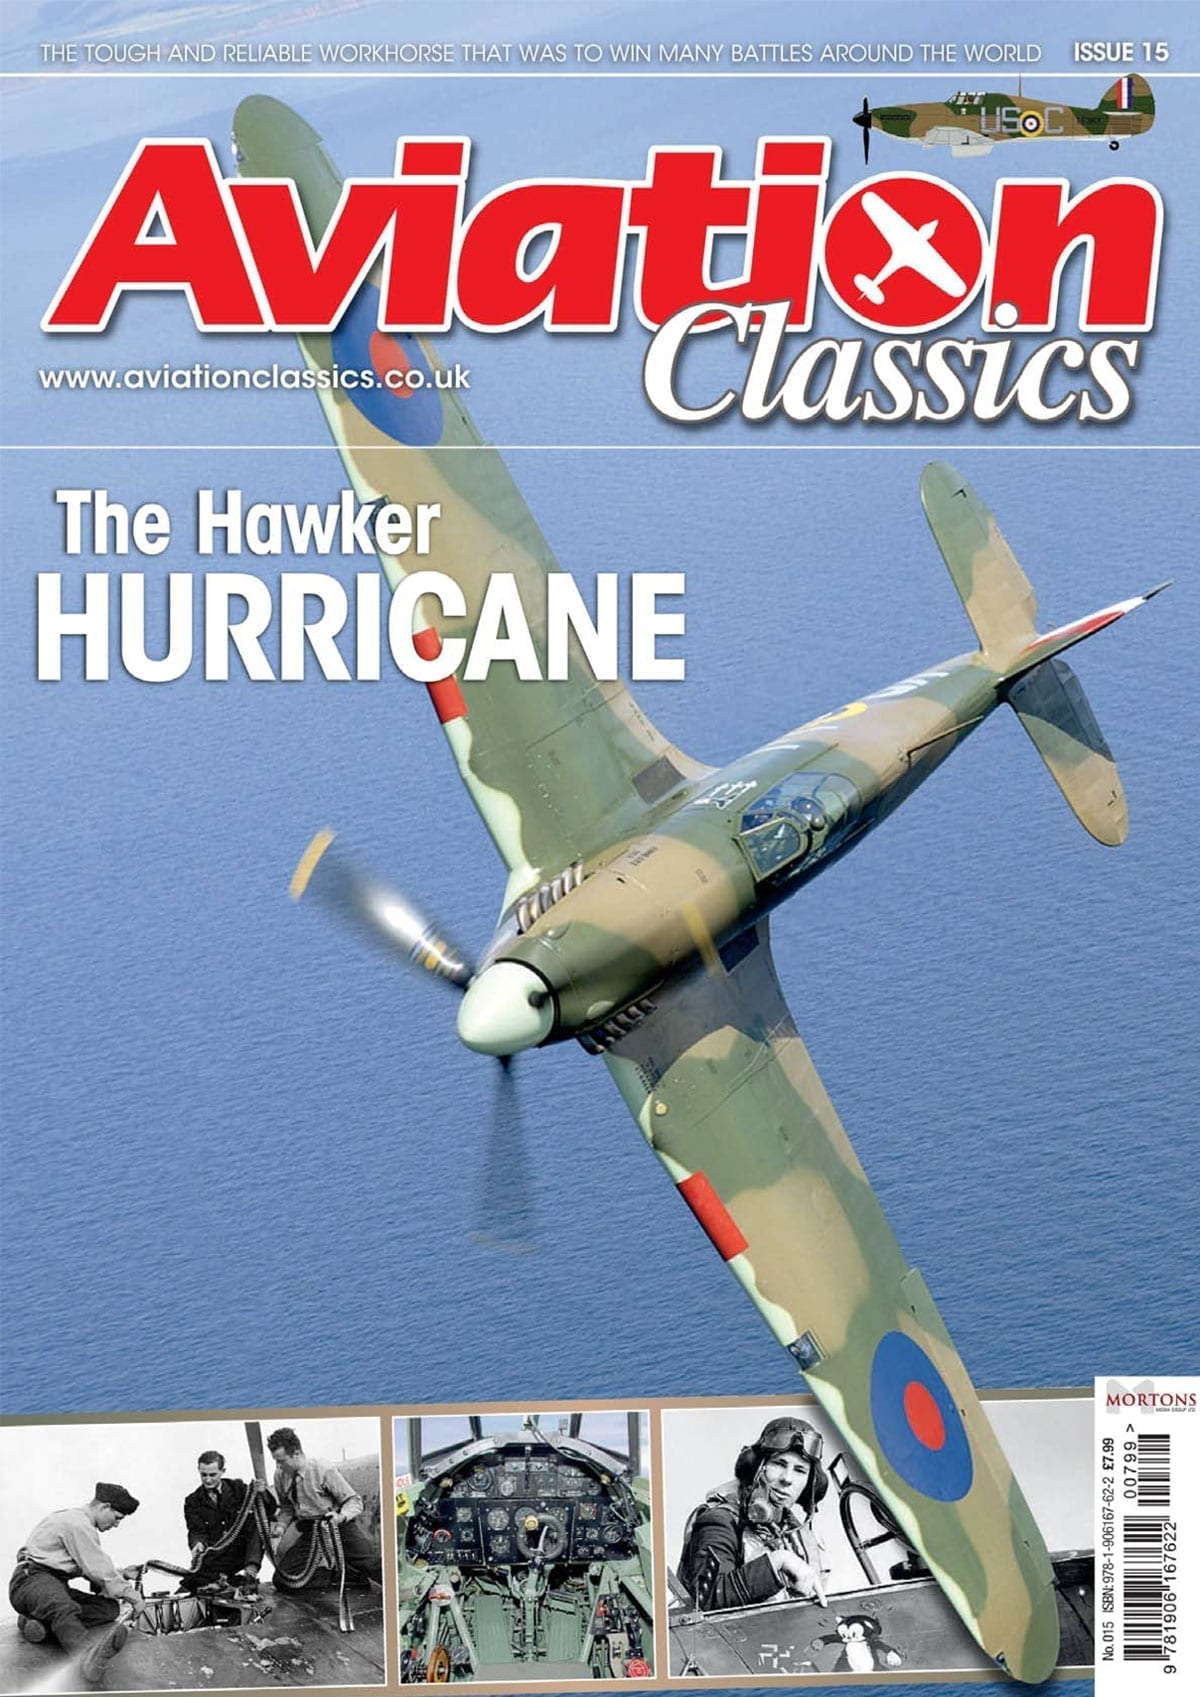 Aviation Classics - The Hawker Hurricane